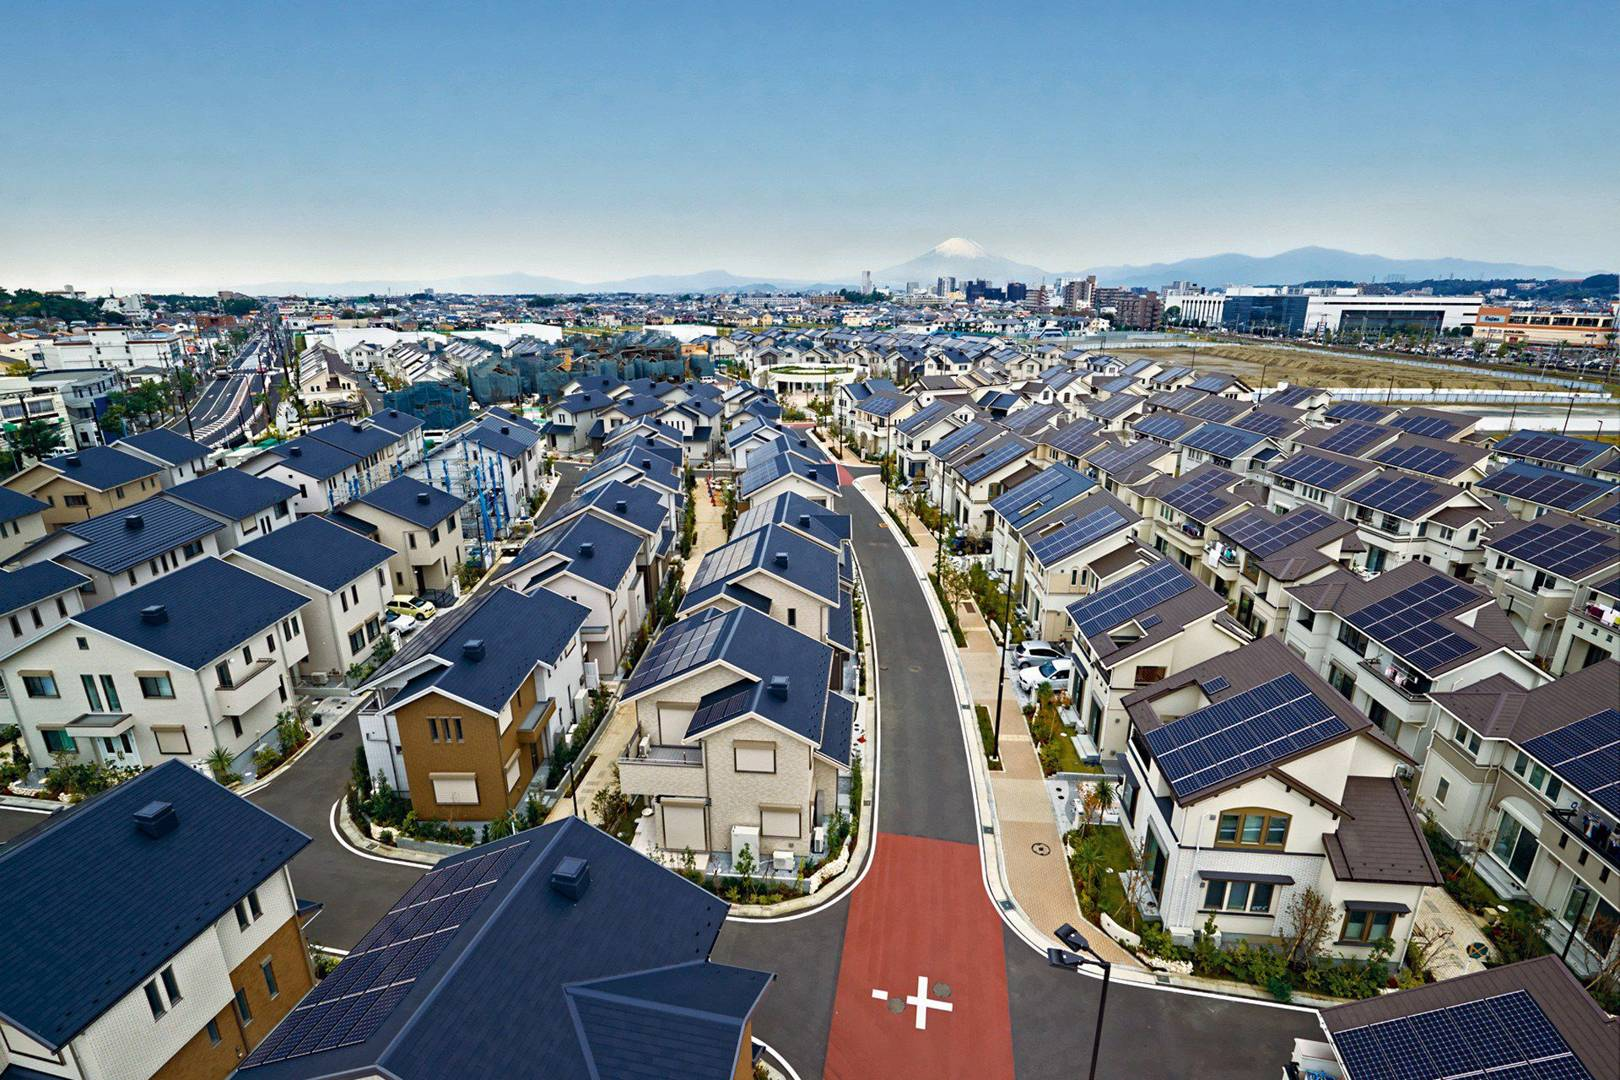 Welcome to Fujisawa, the self-sufficient Japanese smart town | WIRED UK